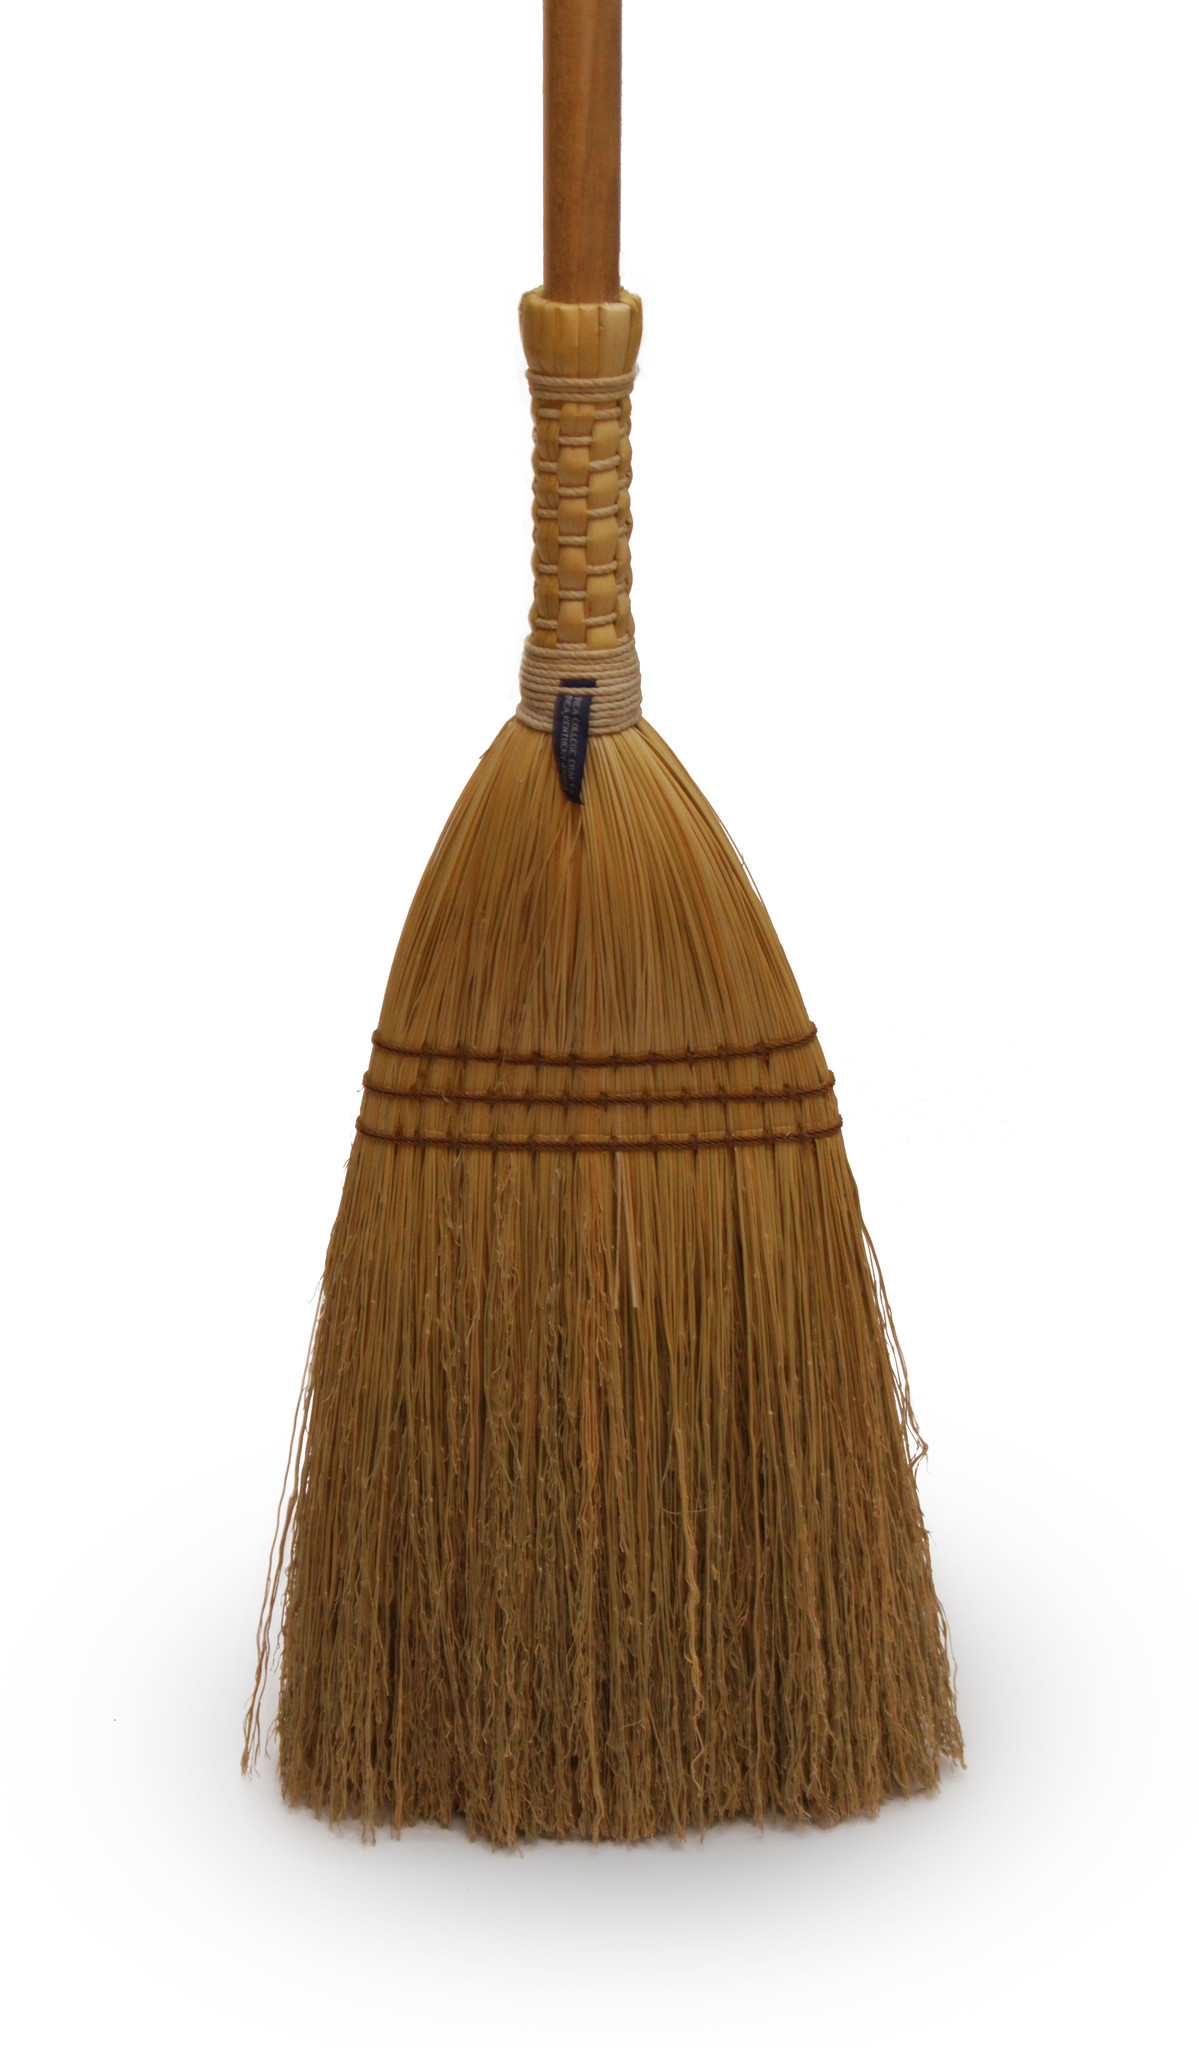 Shaker Braid Broom - Turned Handle-1